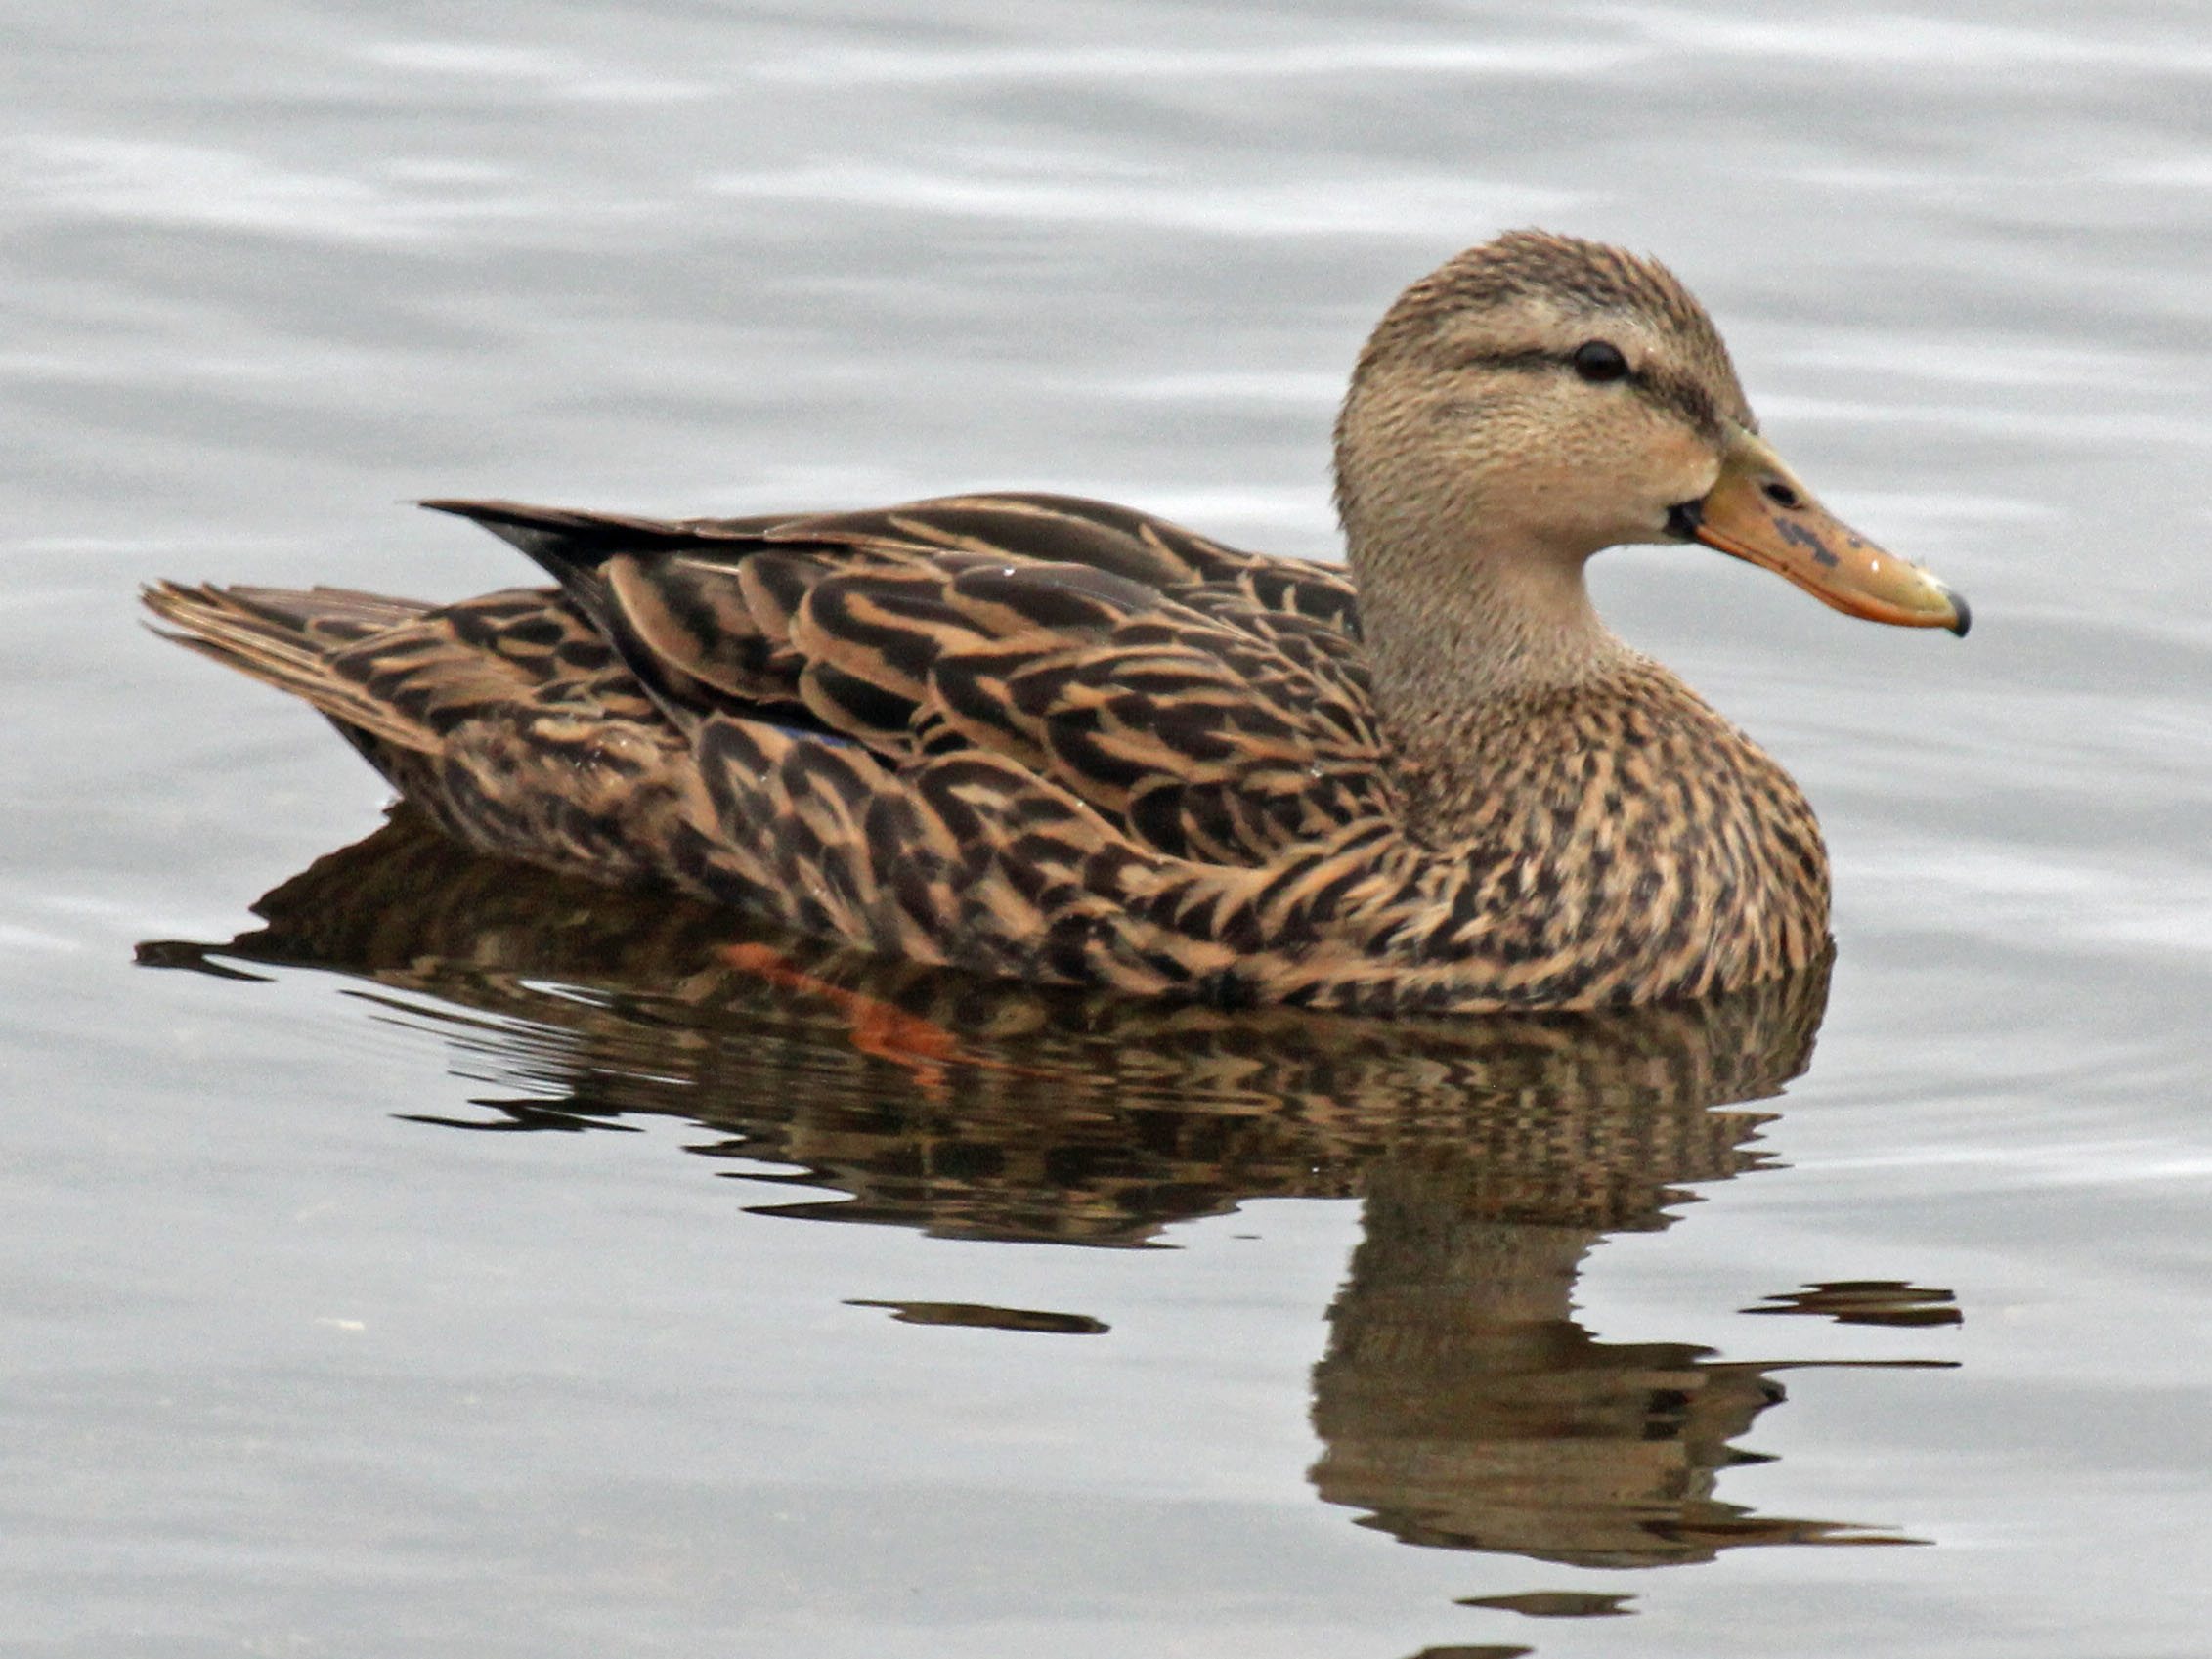 https://upload.wikimedia.org/wikipedia/commons/a/a6/Mottled_Duck_female_RWD2.jpg